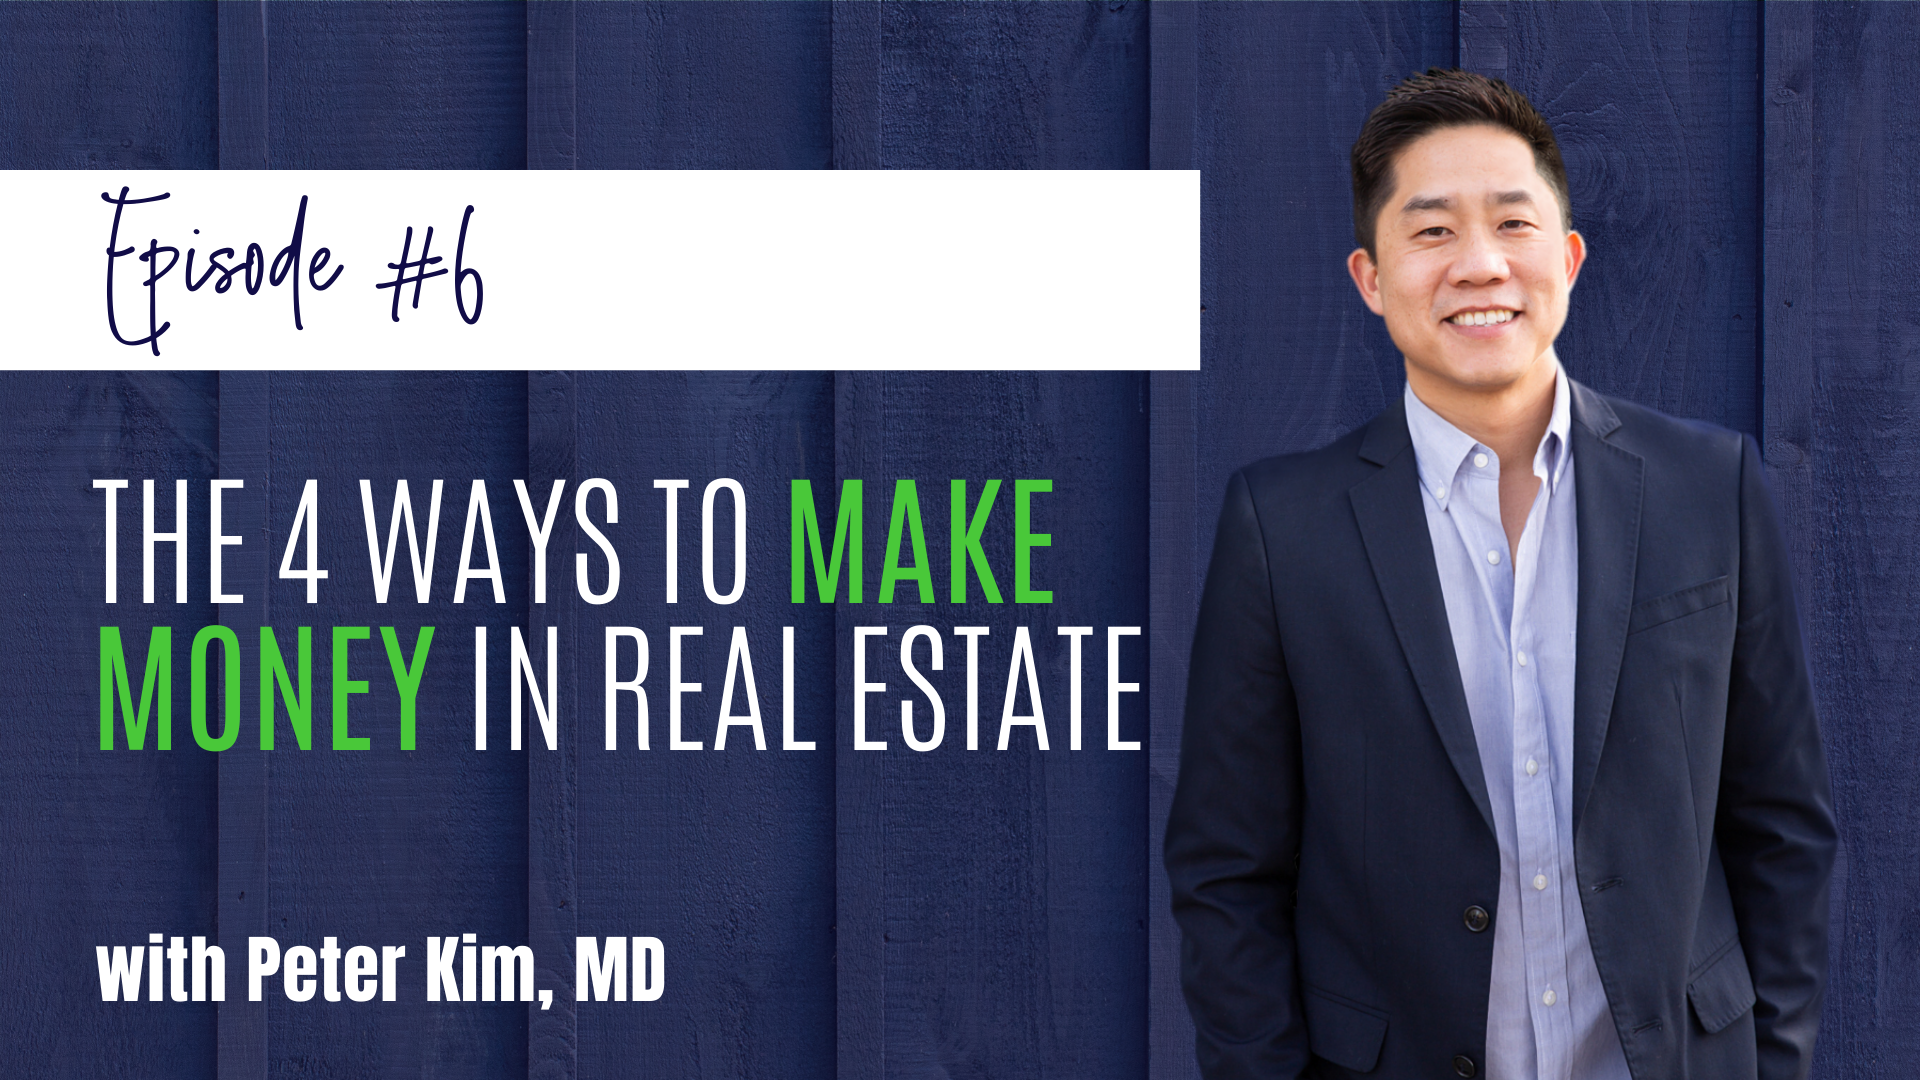 Th 4 Ways to Make Money In Real Estate